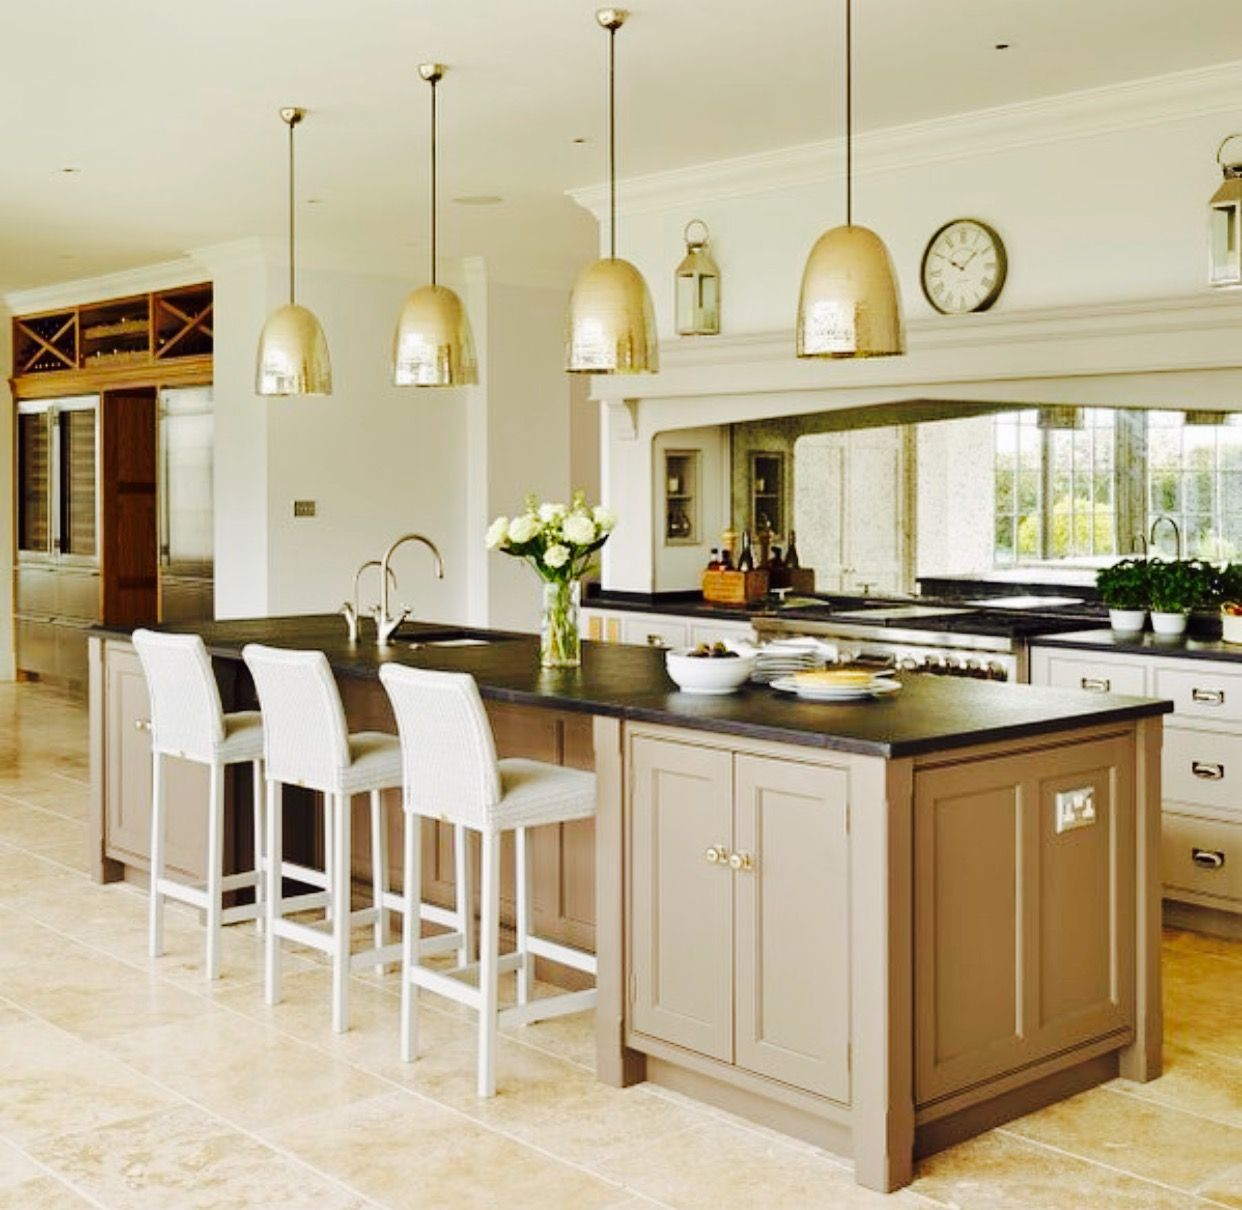 Looking for kitchen ideas Weu0027ve asked the